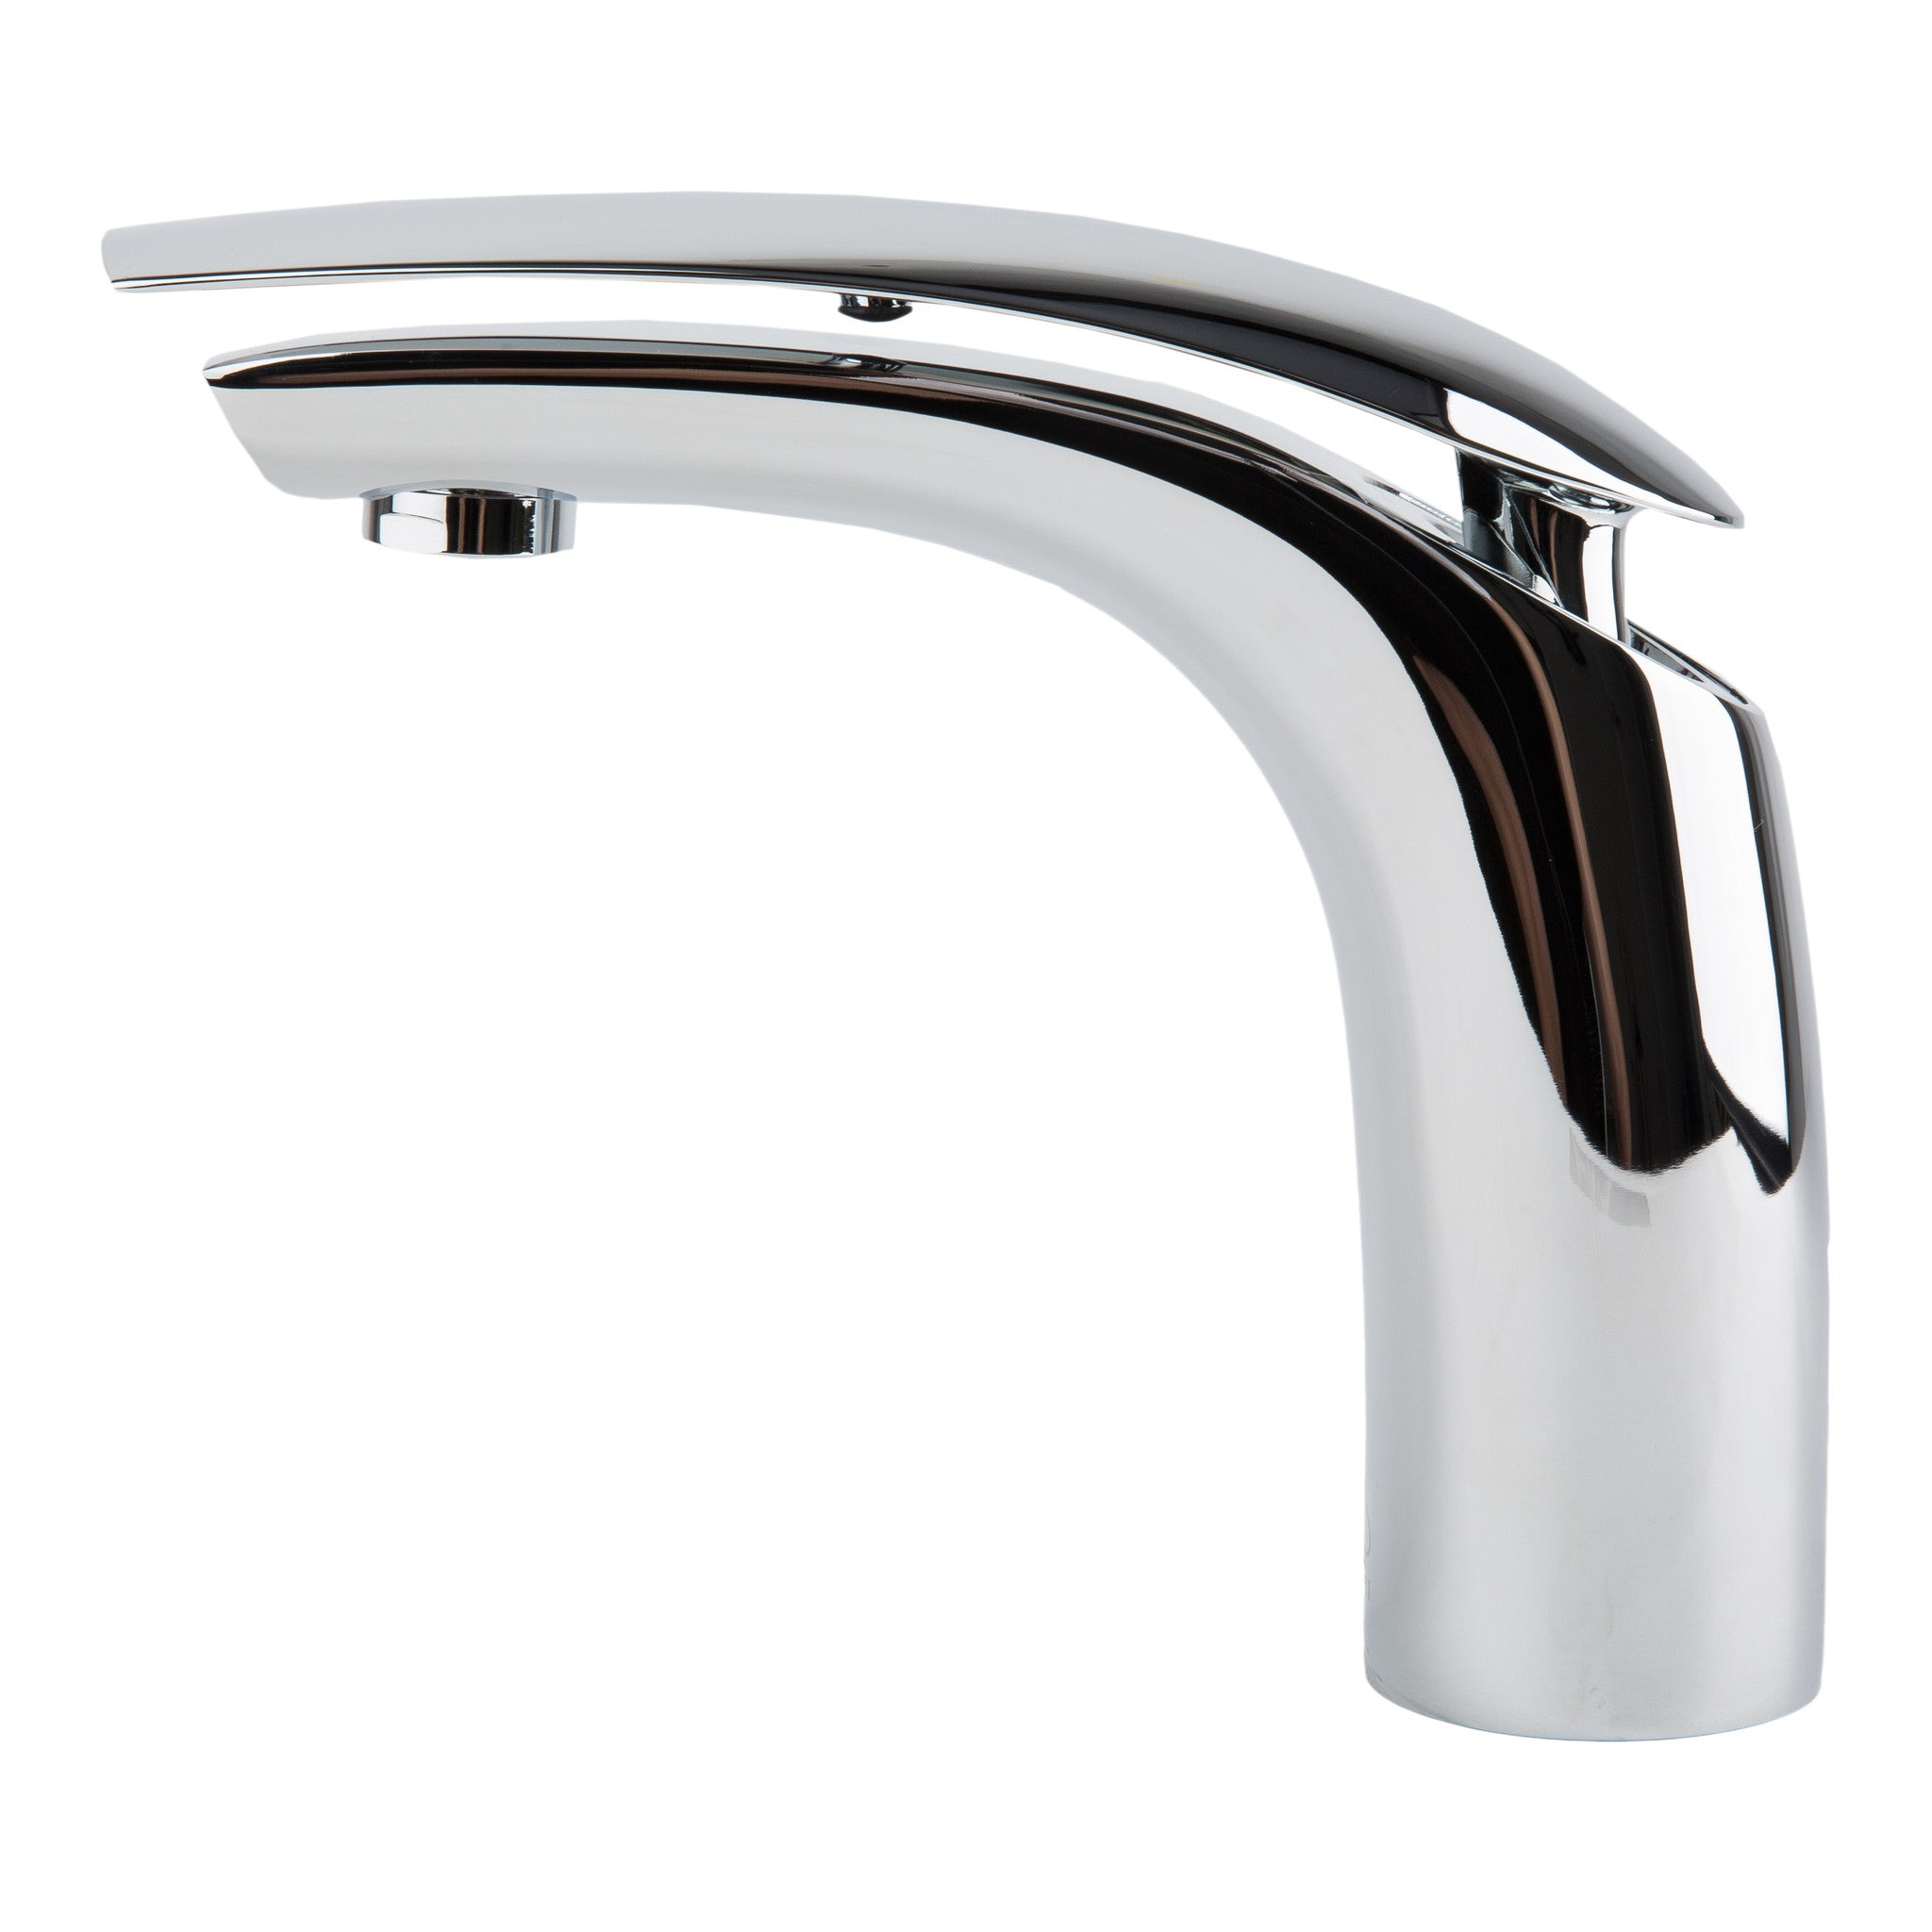 BAI 0613 Single Handle Bathroom Faucet – MegaBAI